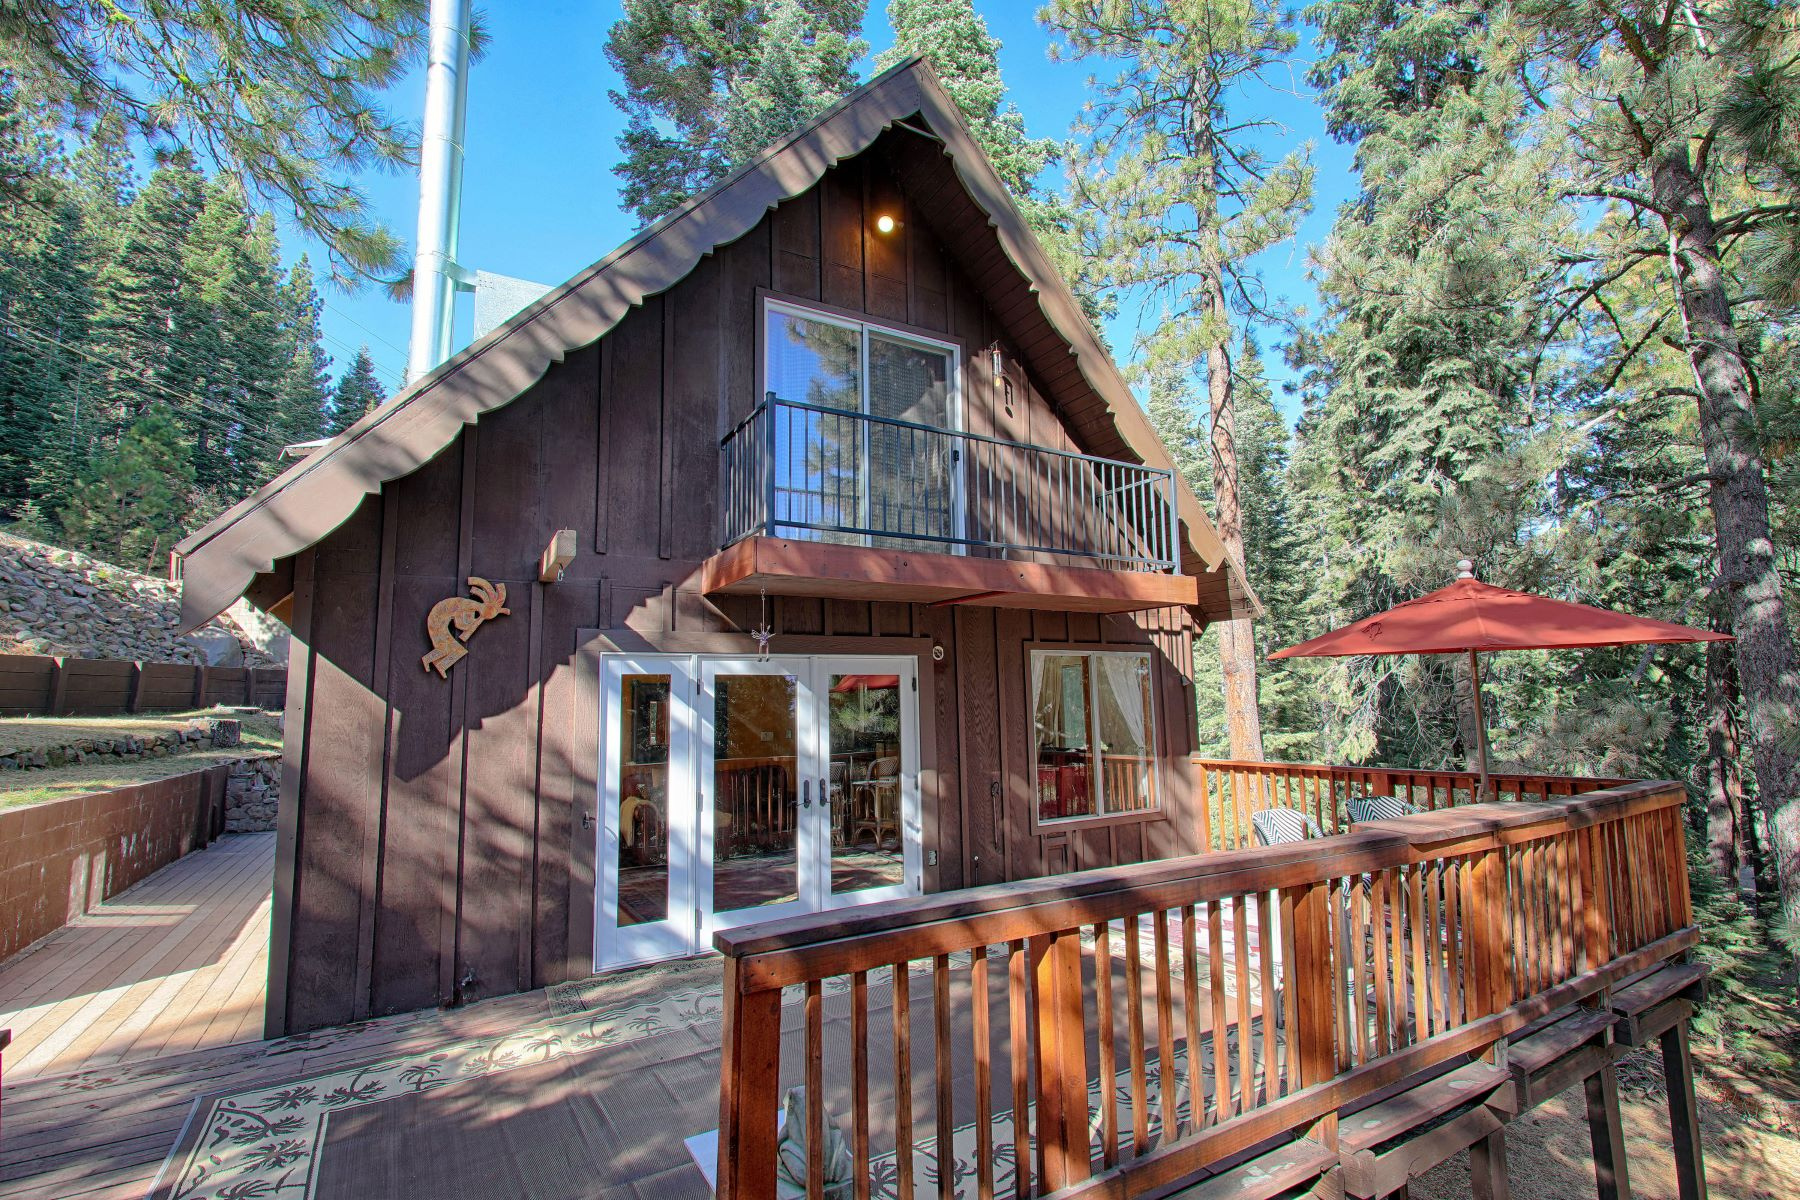 Single Family Homes for Active at 11275 Beacon Road, Truckee, CA 96161 11275 Beacon Road Truckee, California 96161 United States